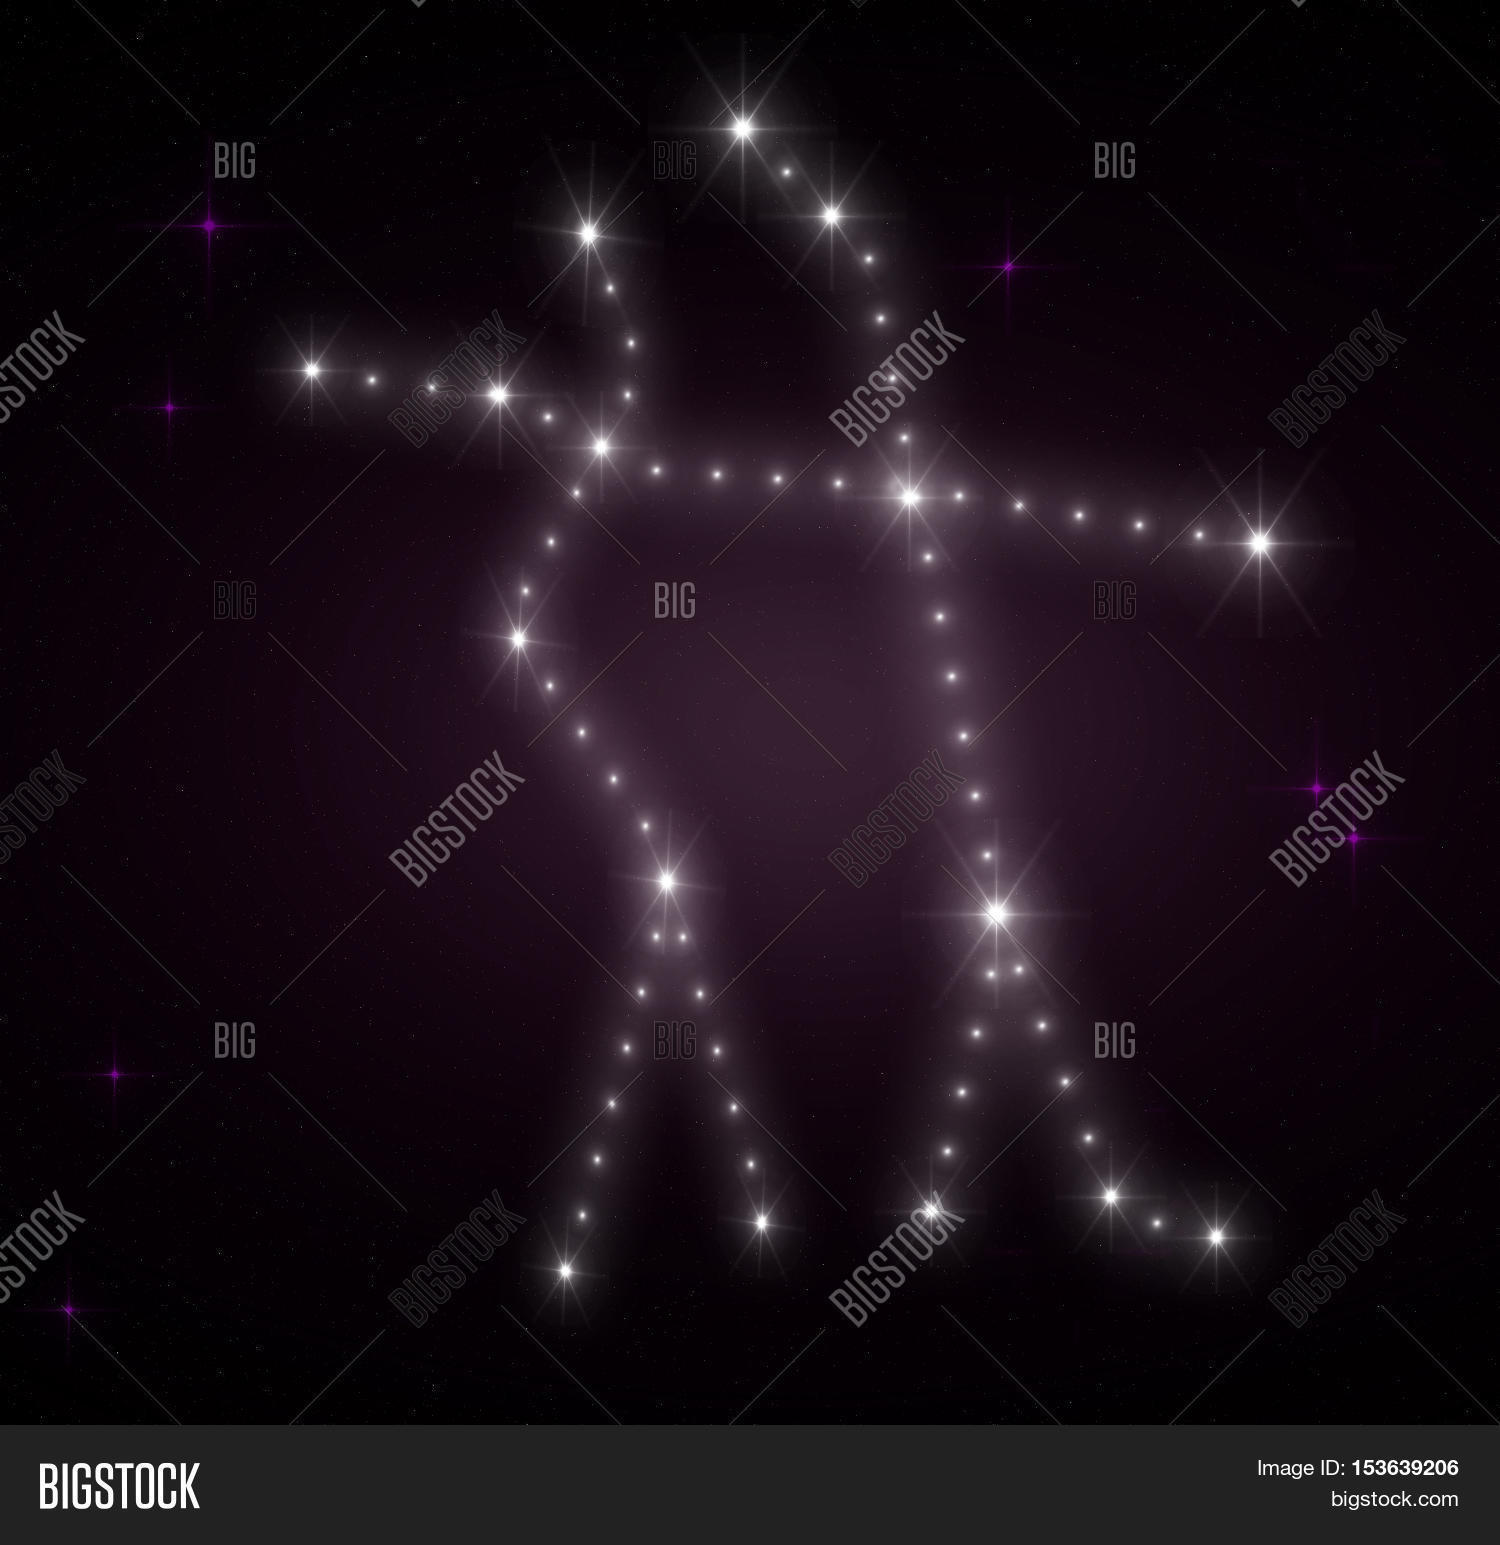 Gemini Zodiac Sign Image Photo Free Trial Bigstock - Zodiac constellations map